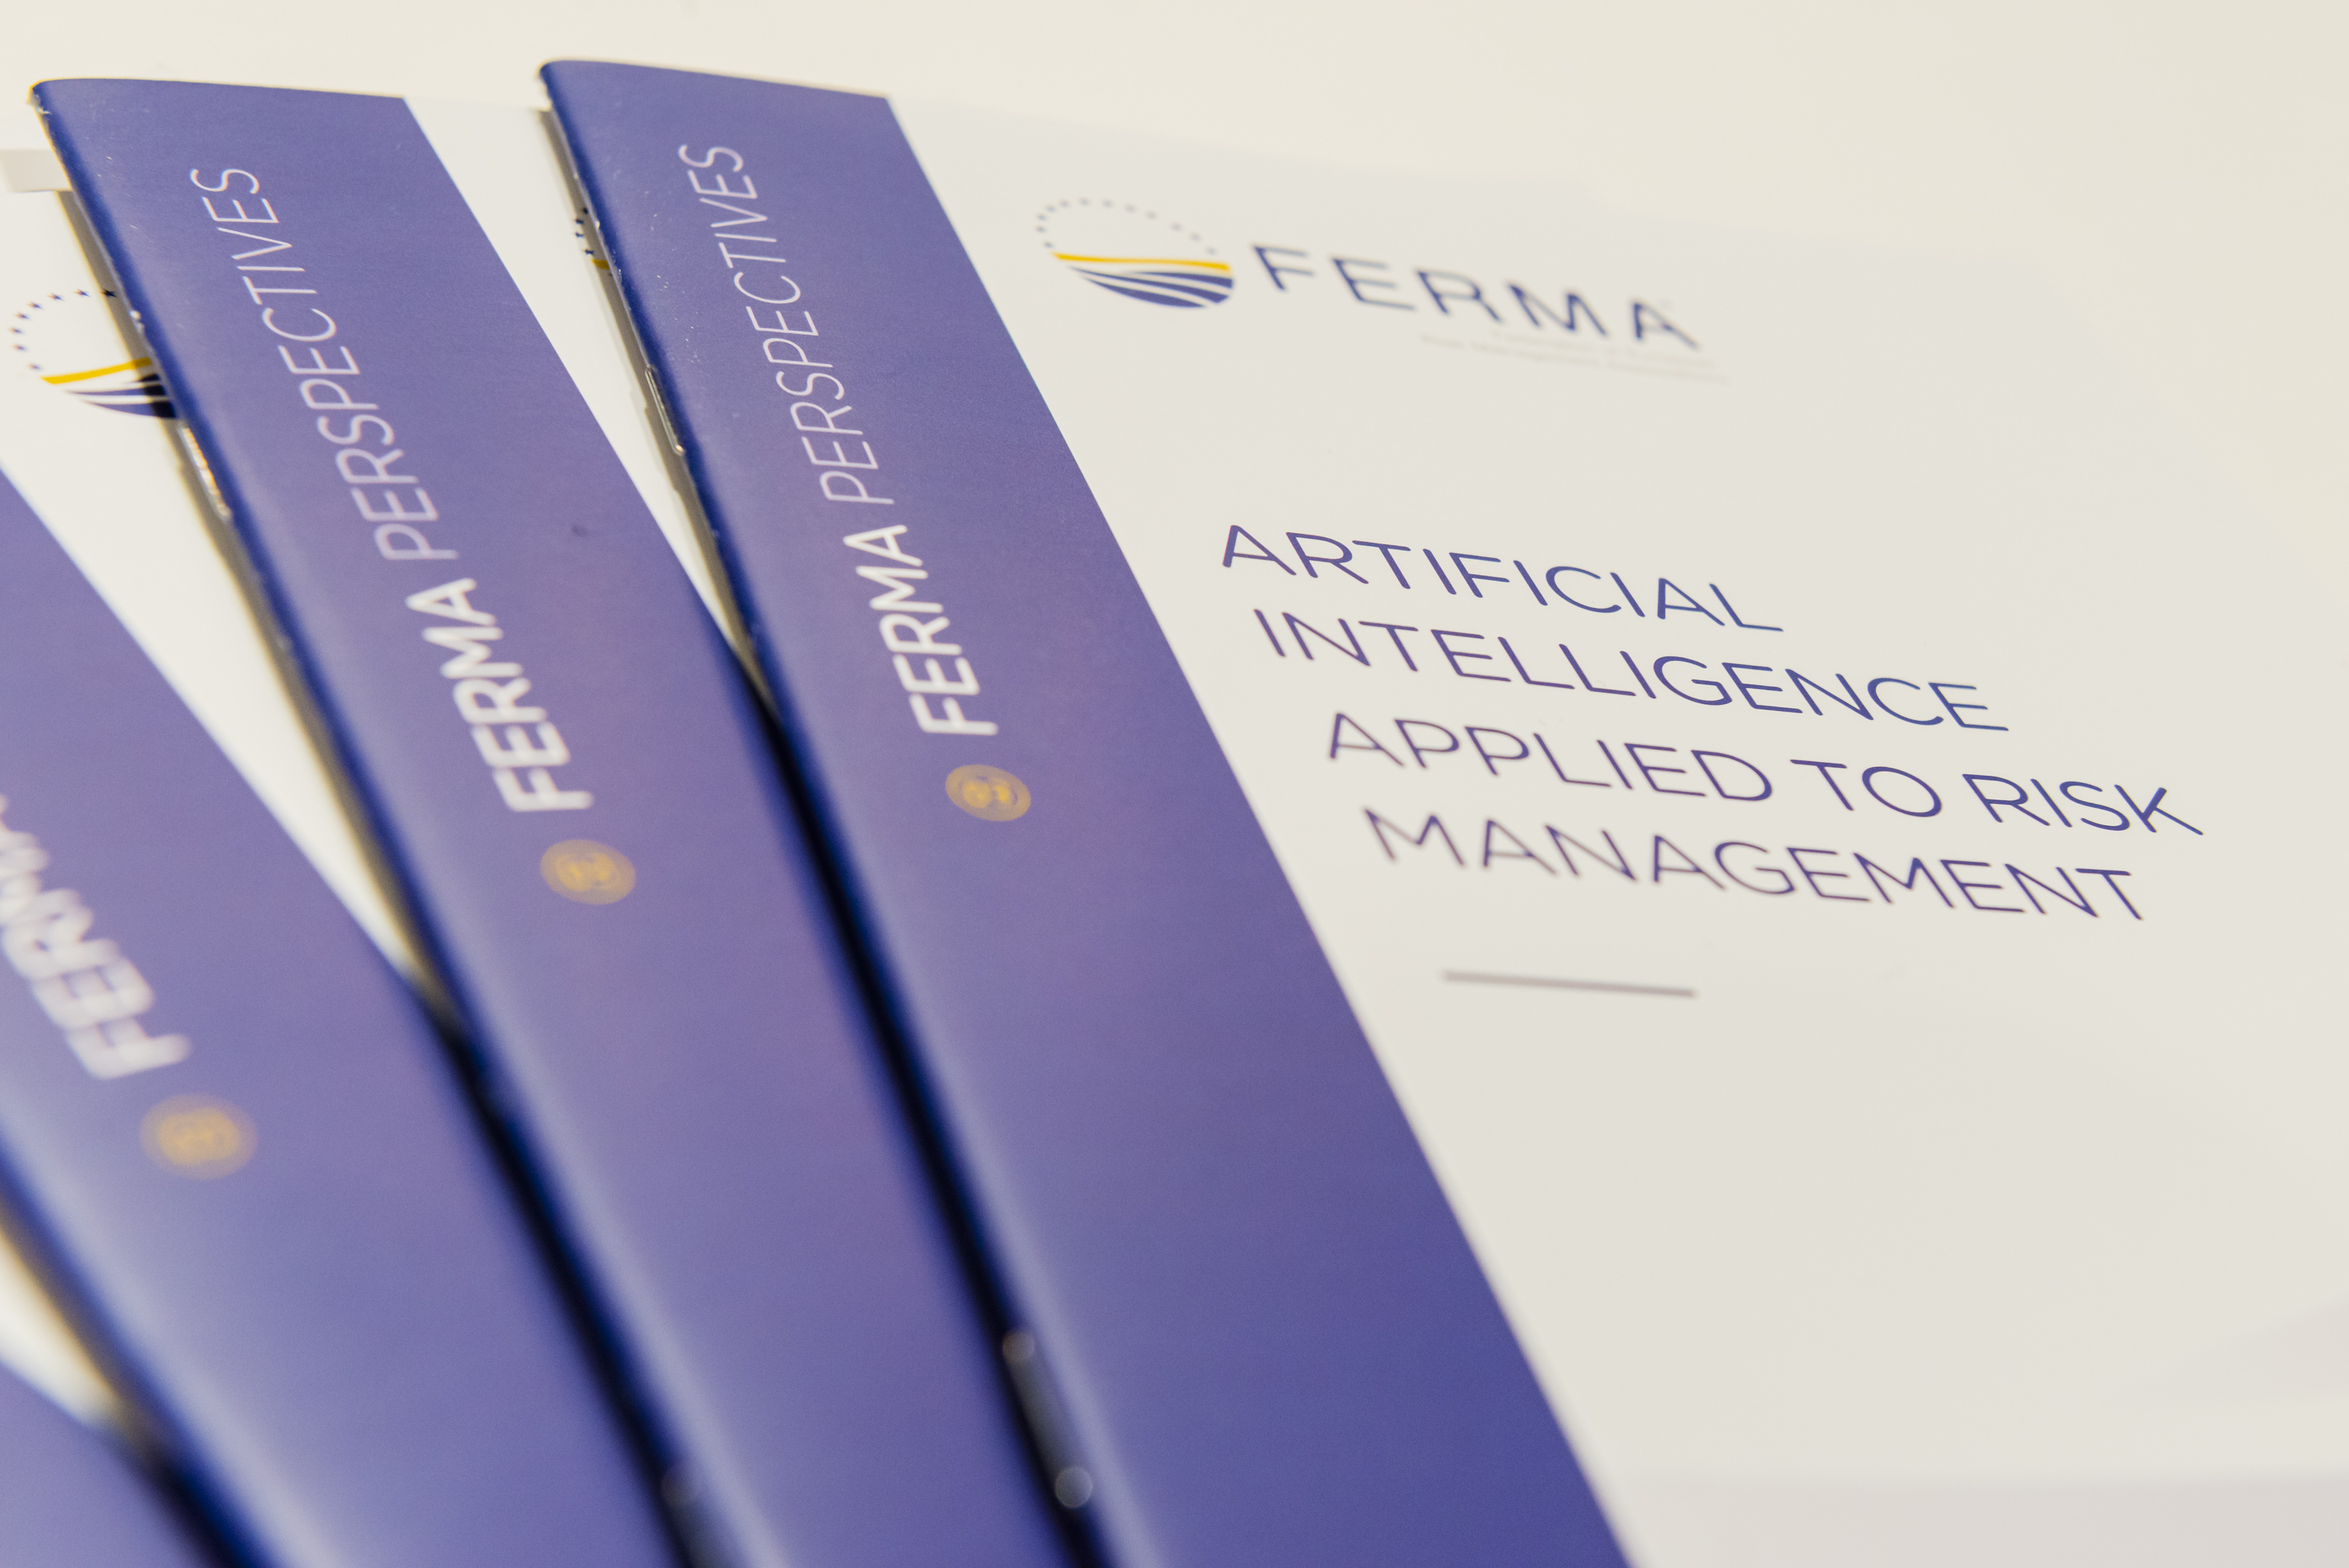 Ferma artificial intelligence applied to risk management